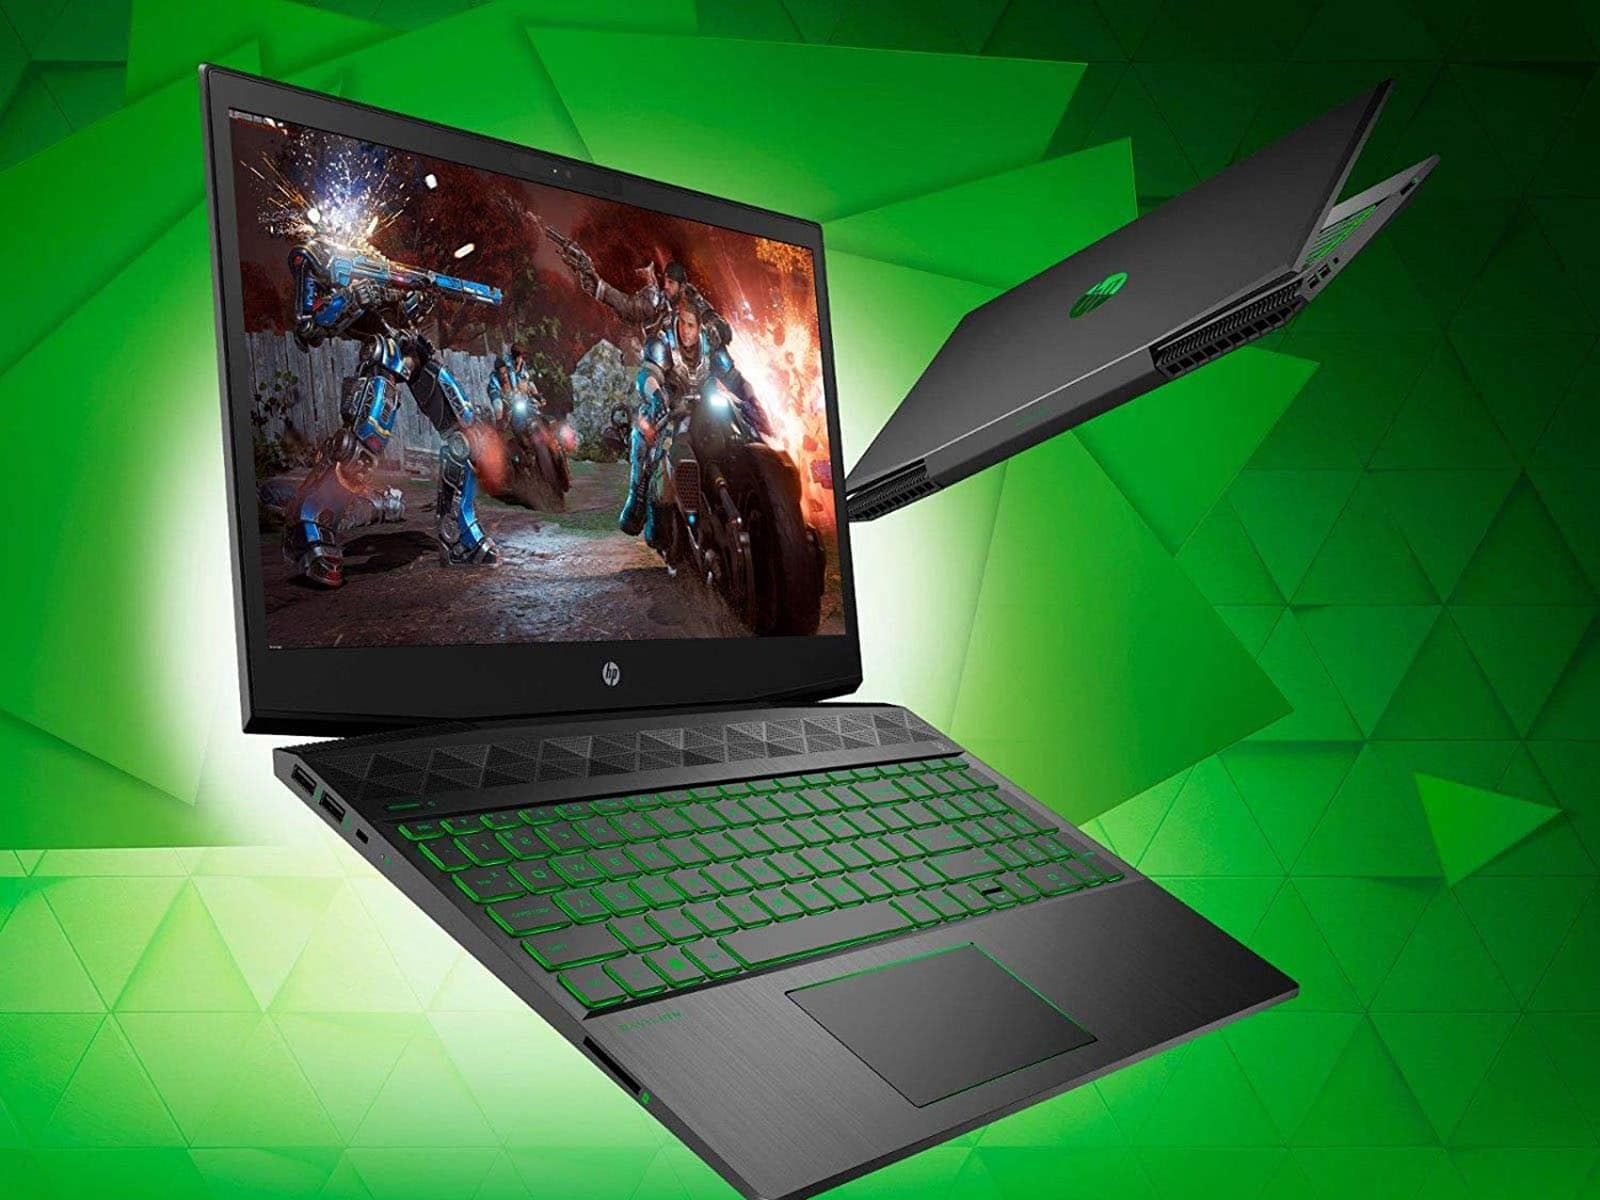 hp pavilion 15-cx0056wm gaming laptop featured